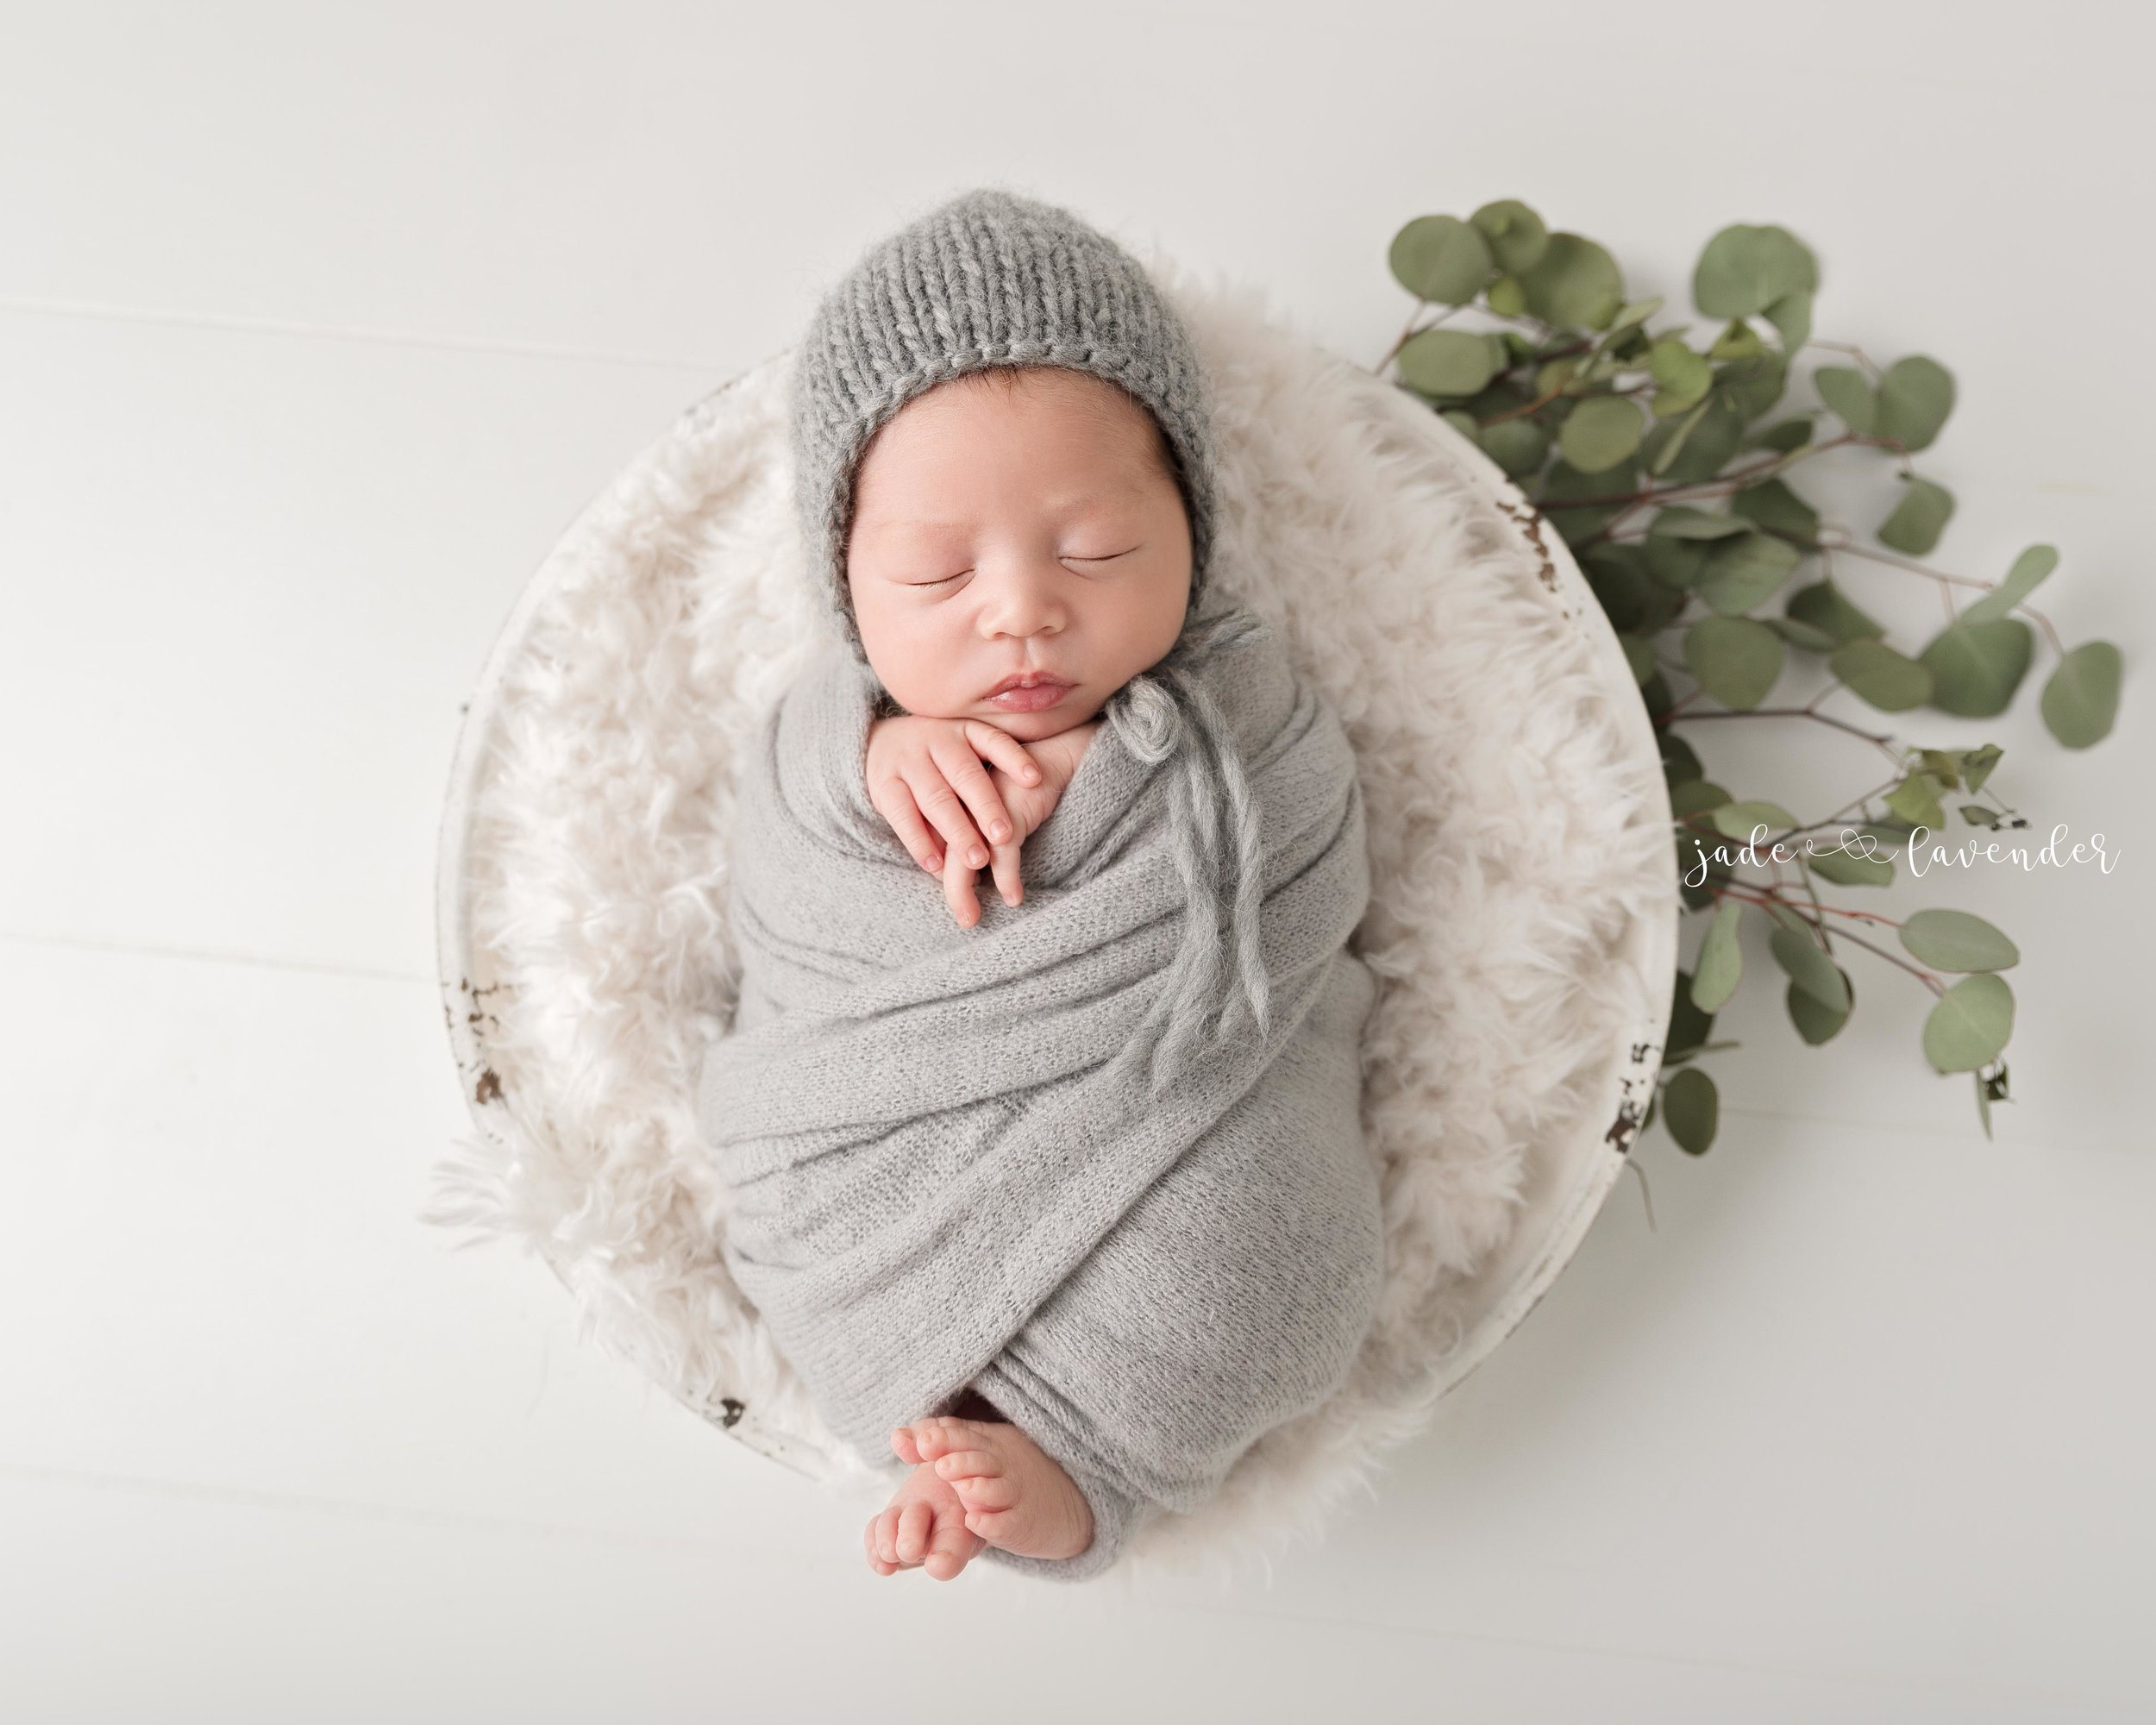 Newborn-photography-baby-images-infant-photos-baby-boy-mini-session-spokane-washington (6 of 7).jpg